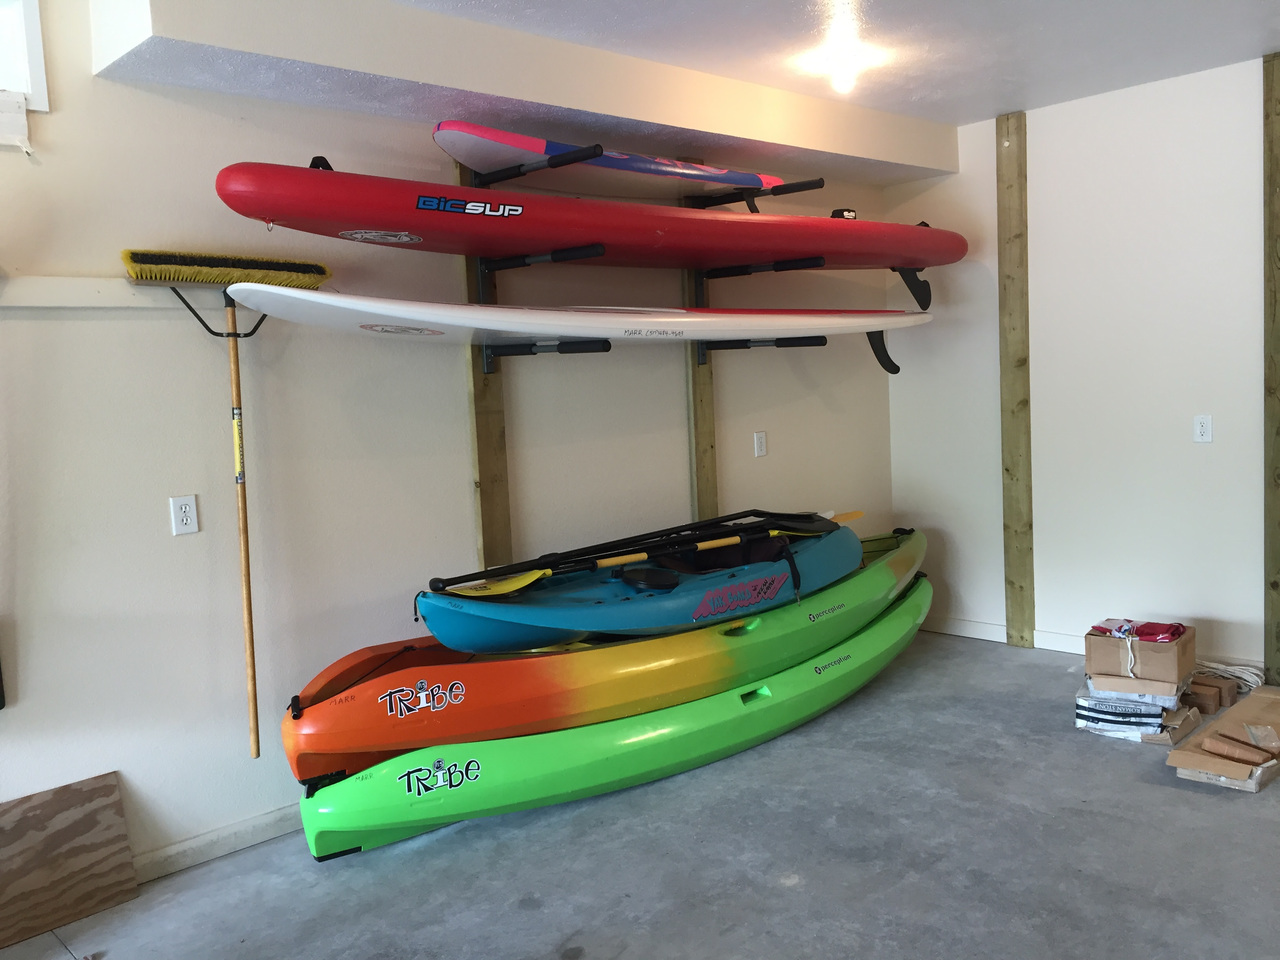 Garage Paddleboard Storage Rack